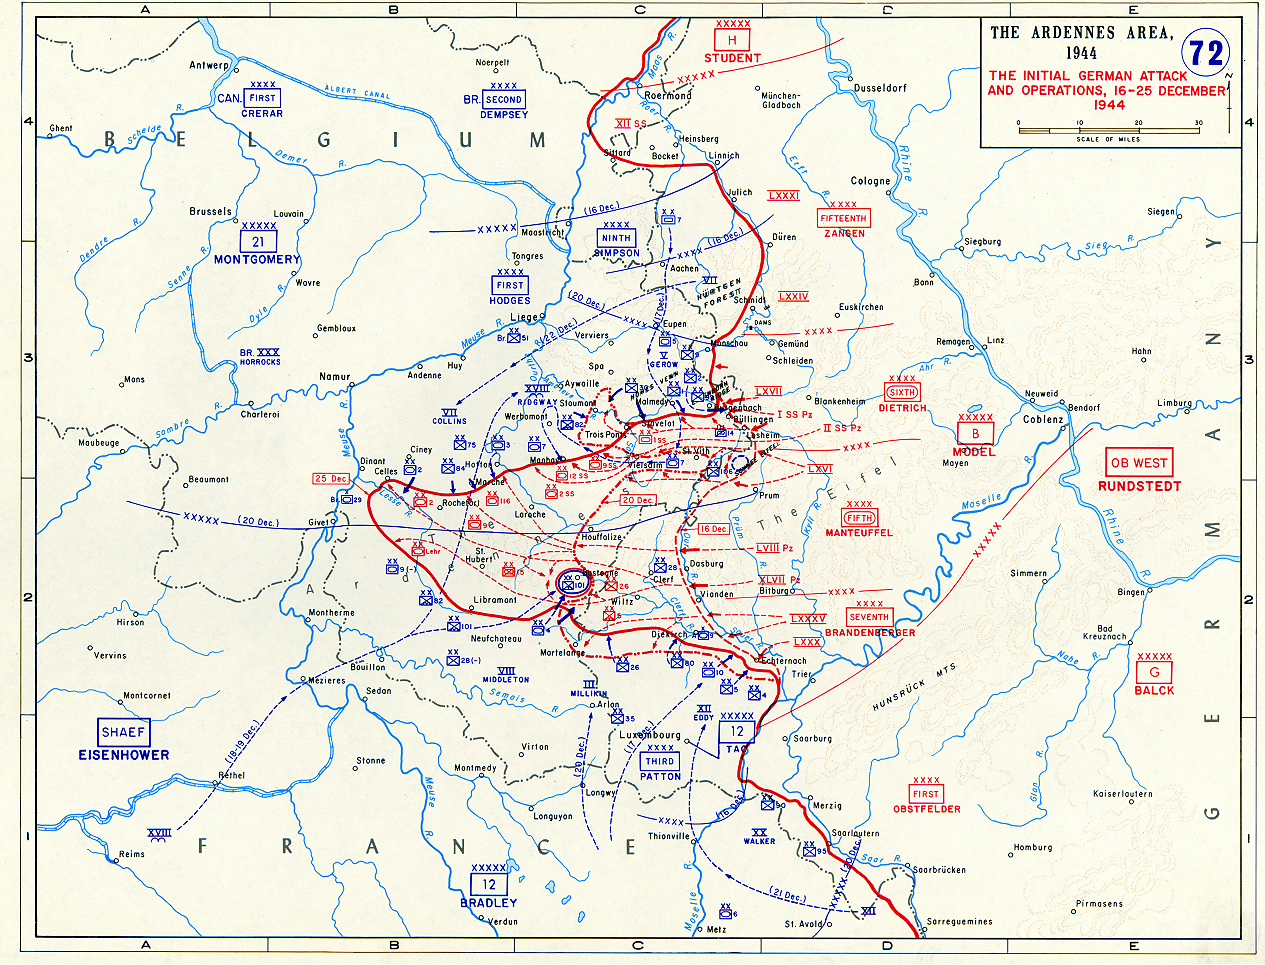 Map of German Counterattack in the Ardennes The Battle of the